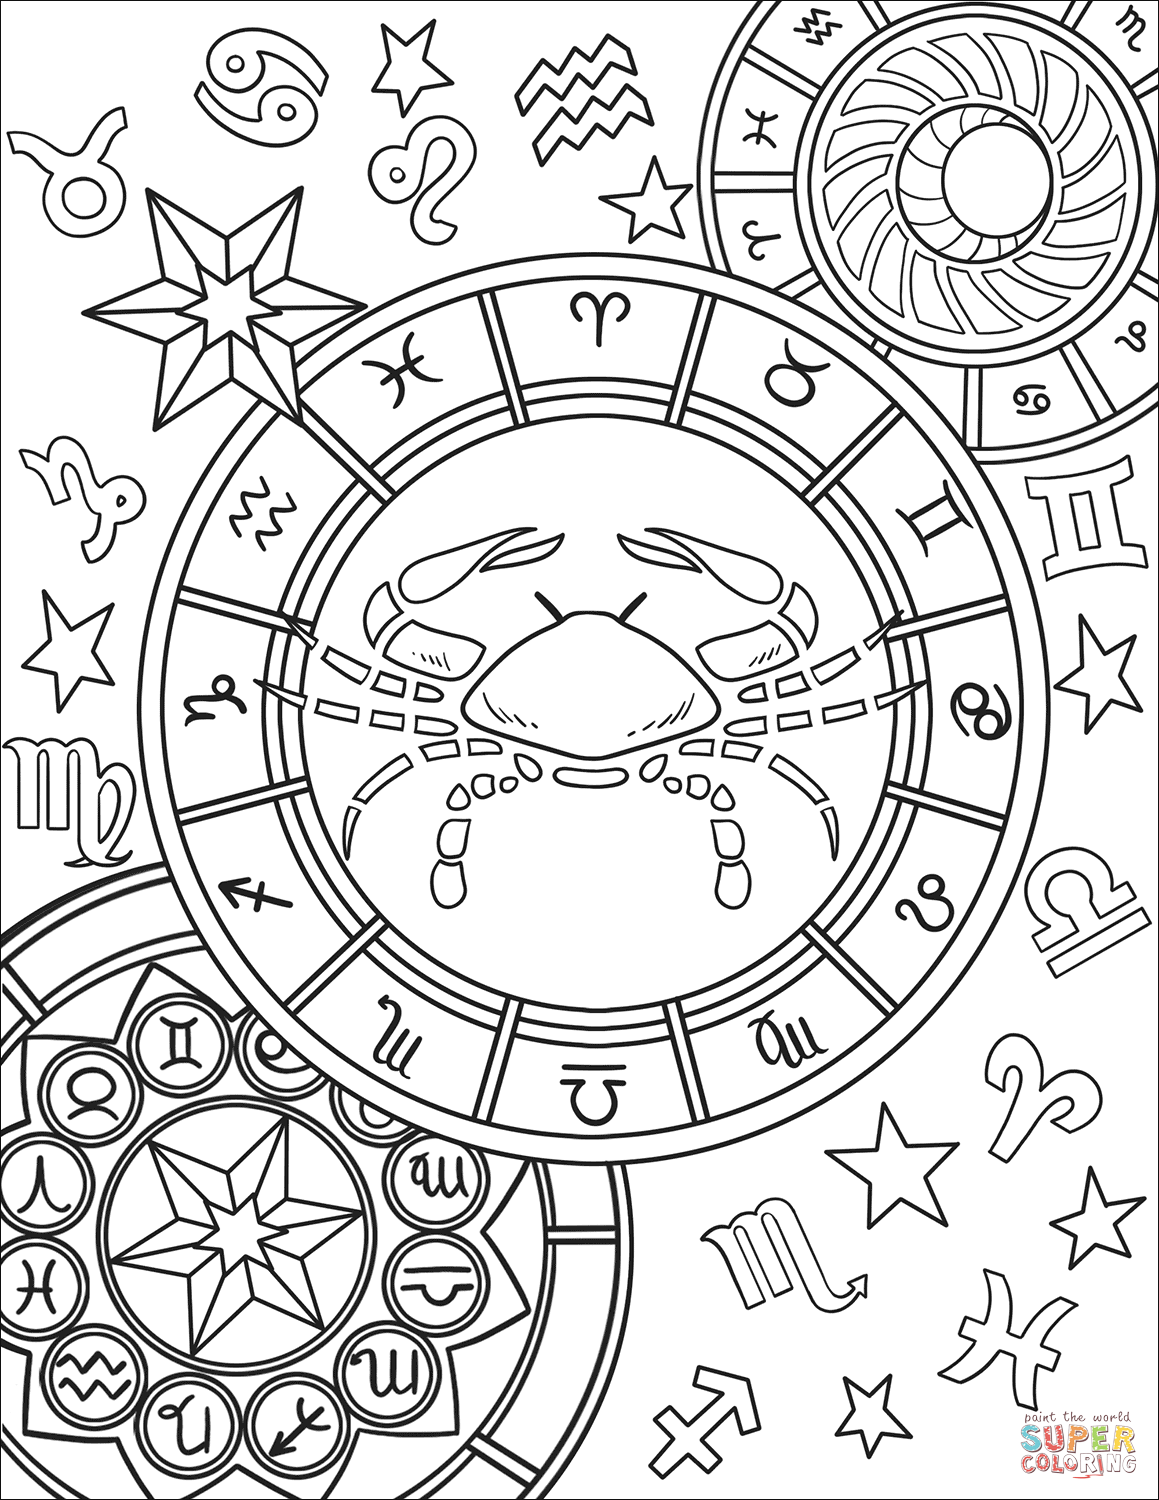 cancer zodiac coloring pages 350 best adult colouringzodiac signs images on pinterest cancer zodiac pages coloring